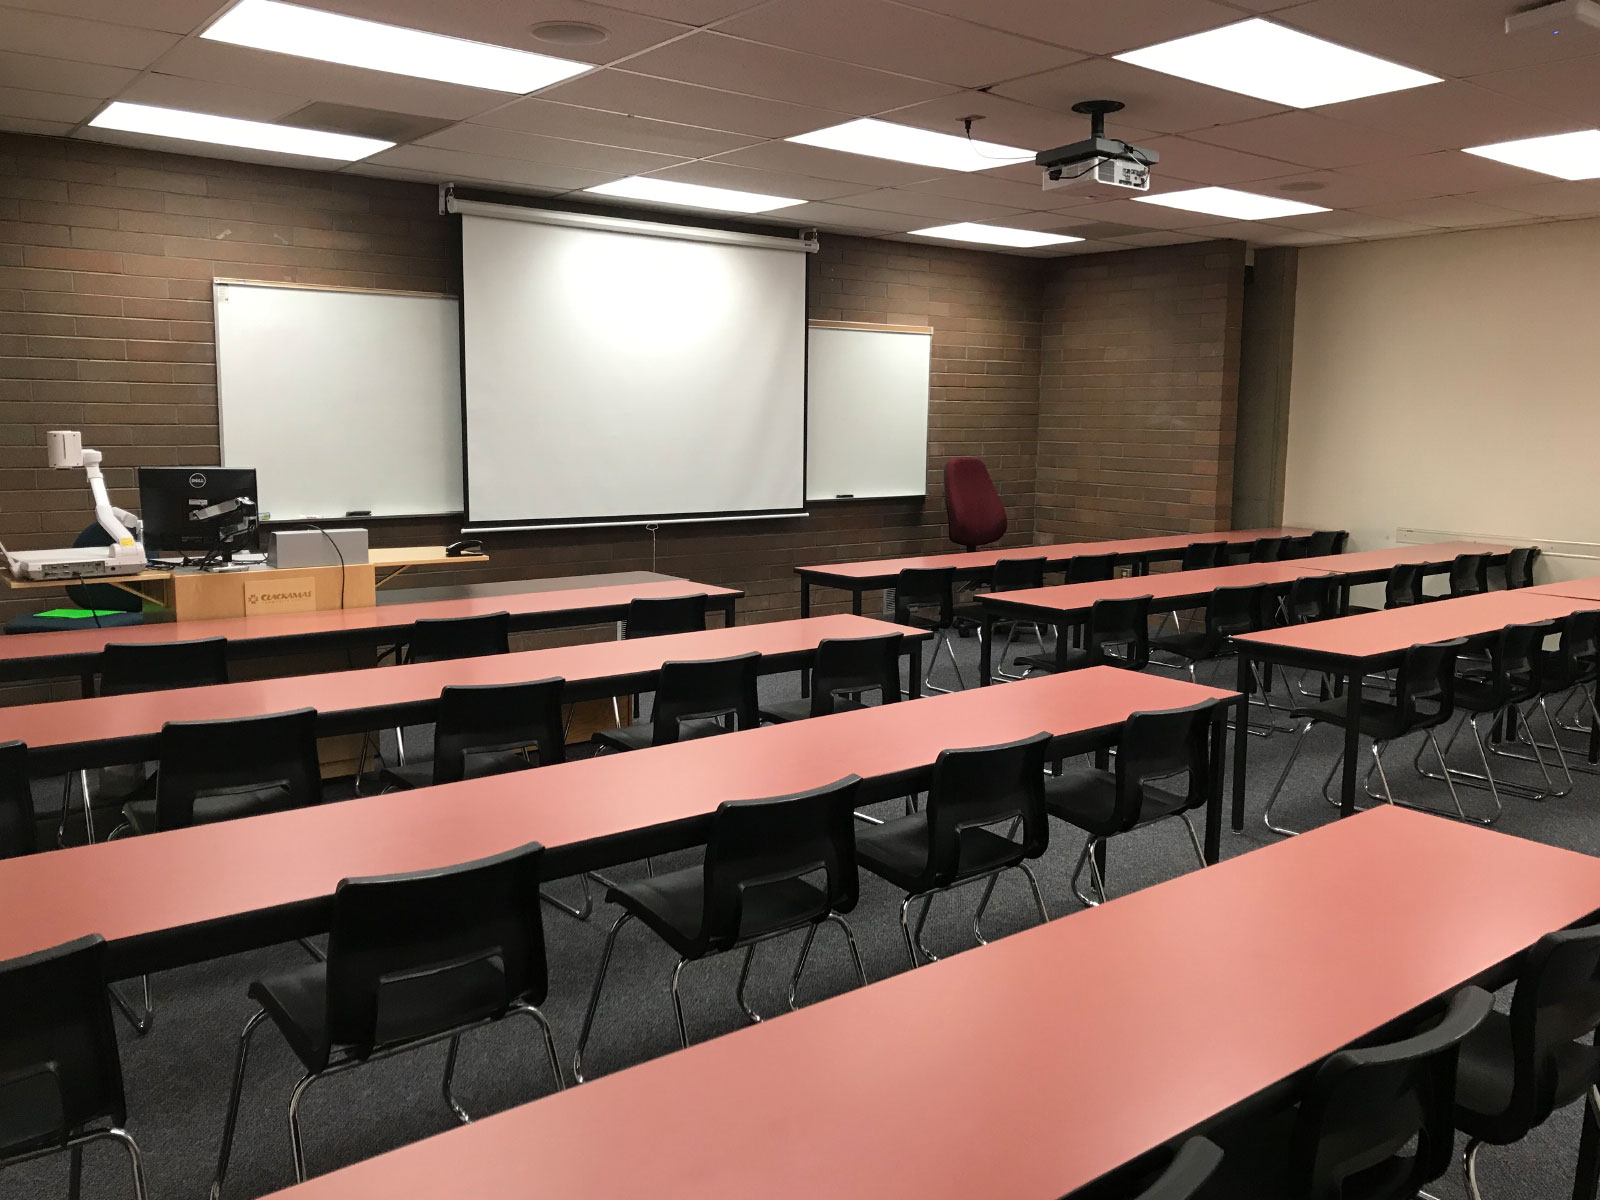 Rows of red tables and a podium in an Oregon CIty classroom with a projector screen against a brick wall